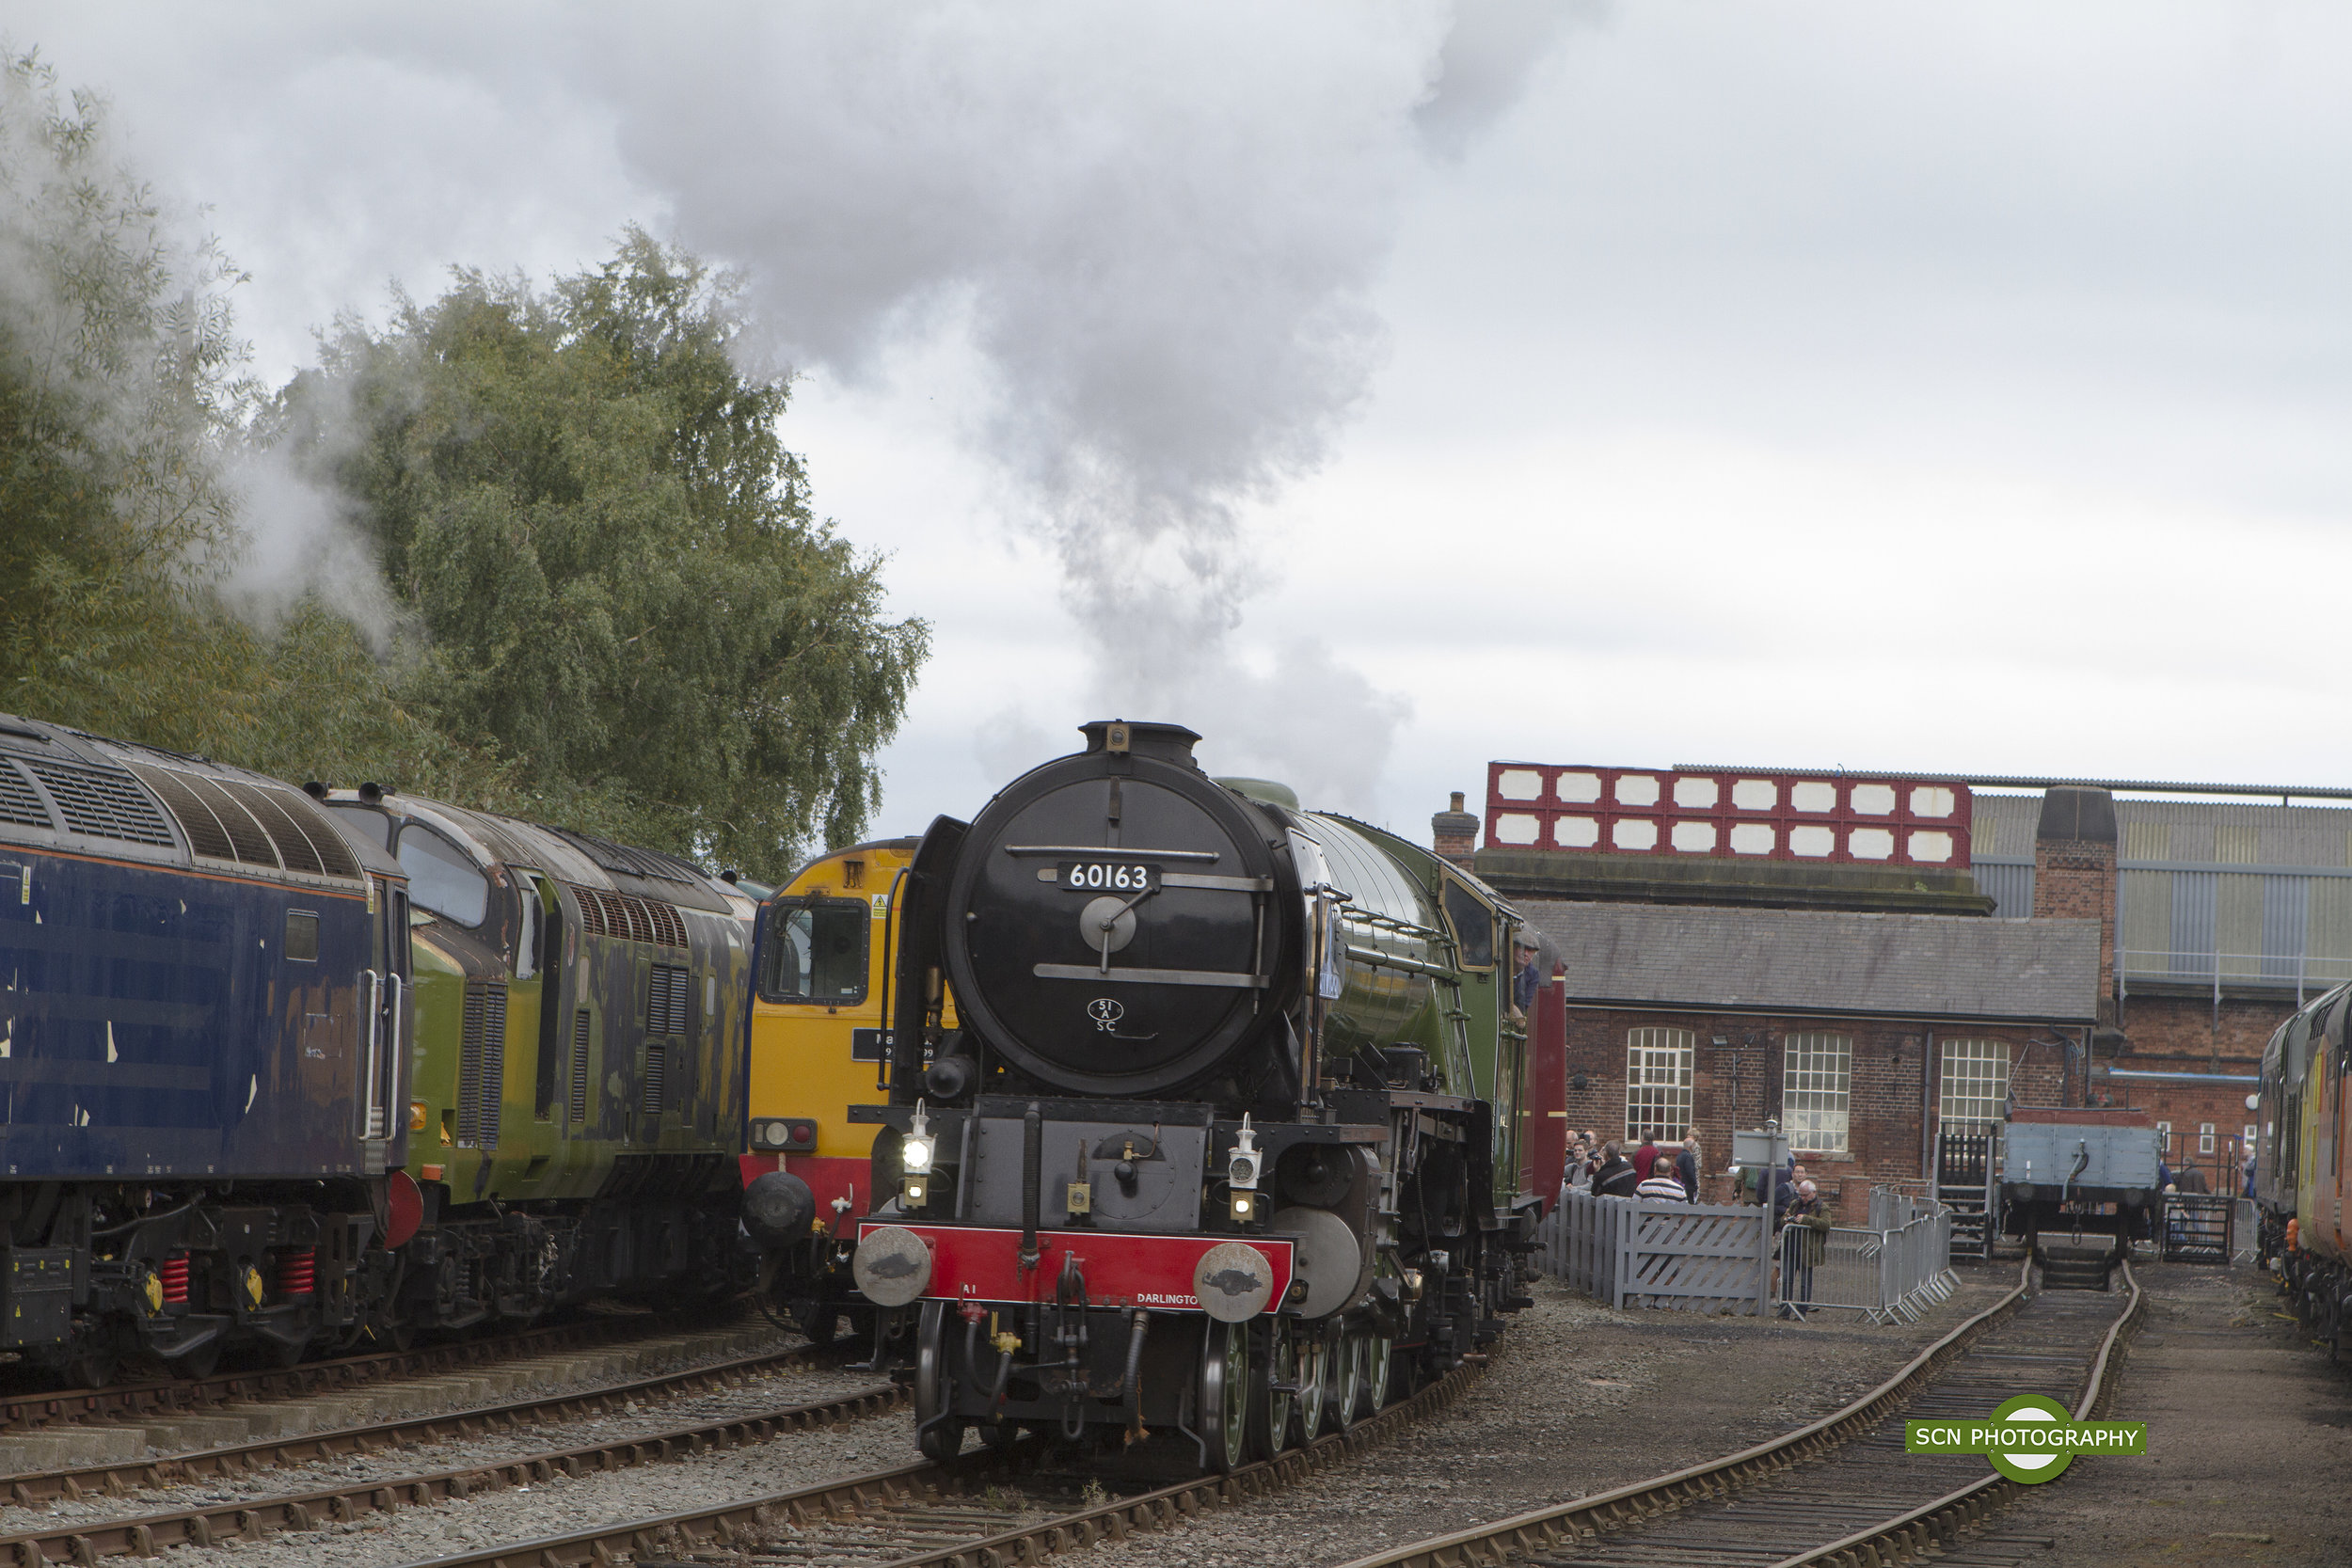 Tornado on the Mainline - In it's tenth operating year, Tornado will be hauling various railtours throughout the UK, which Stuart aims to photograph during the summer months, along with the engines heritage railway commitments.